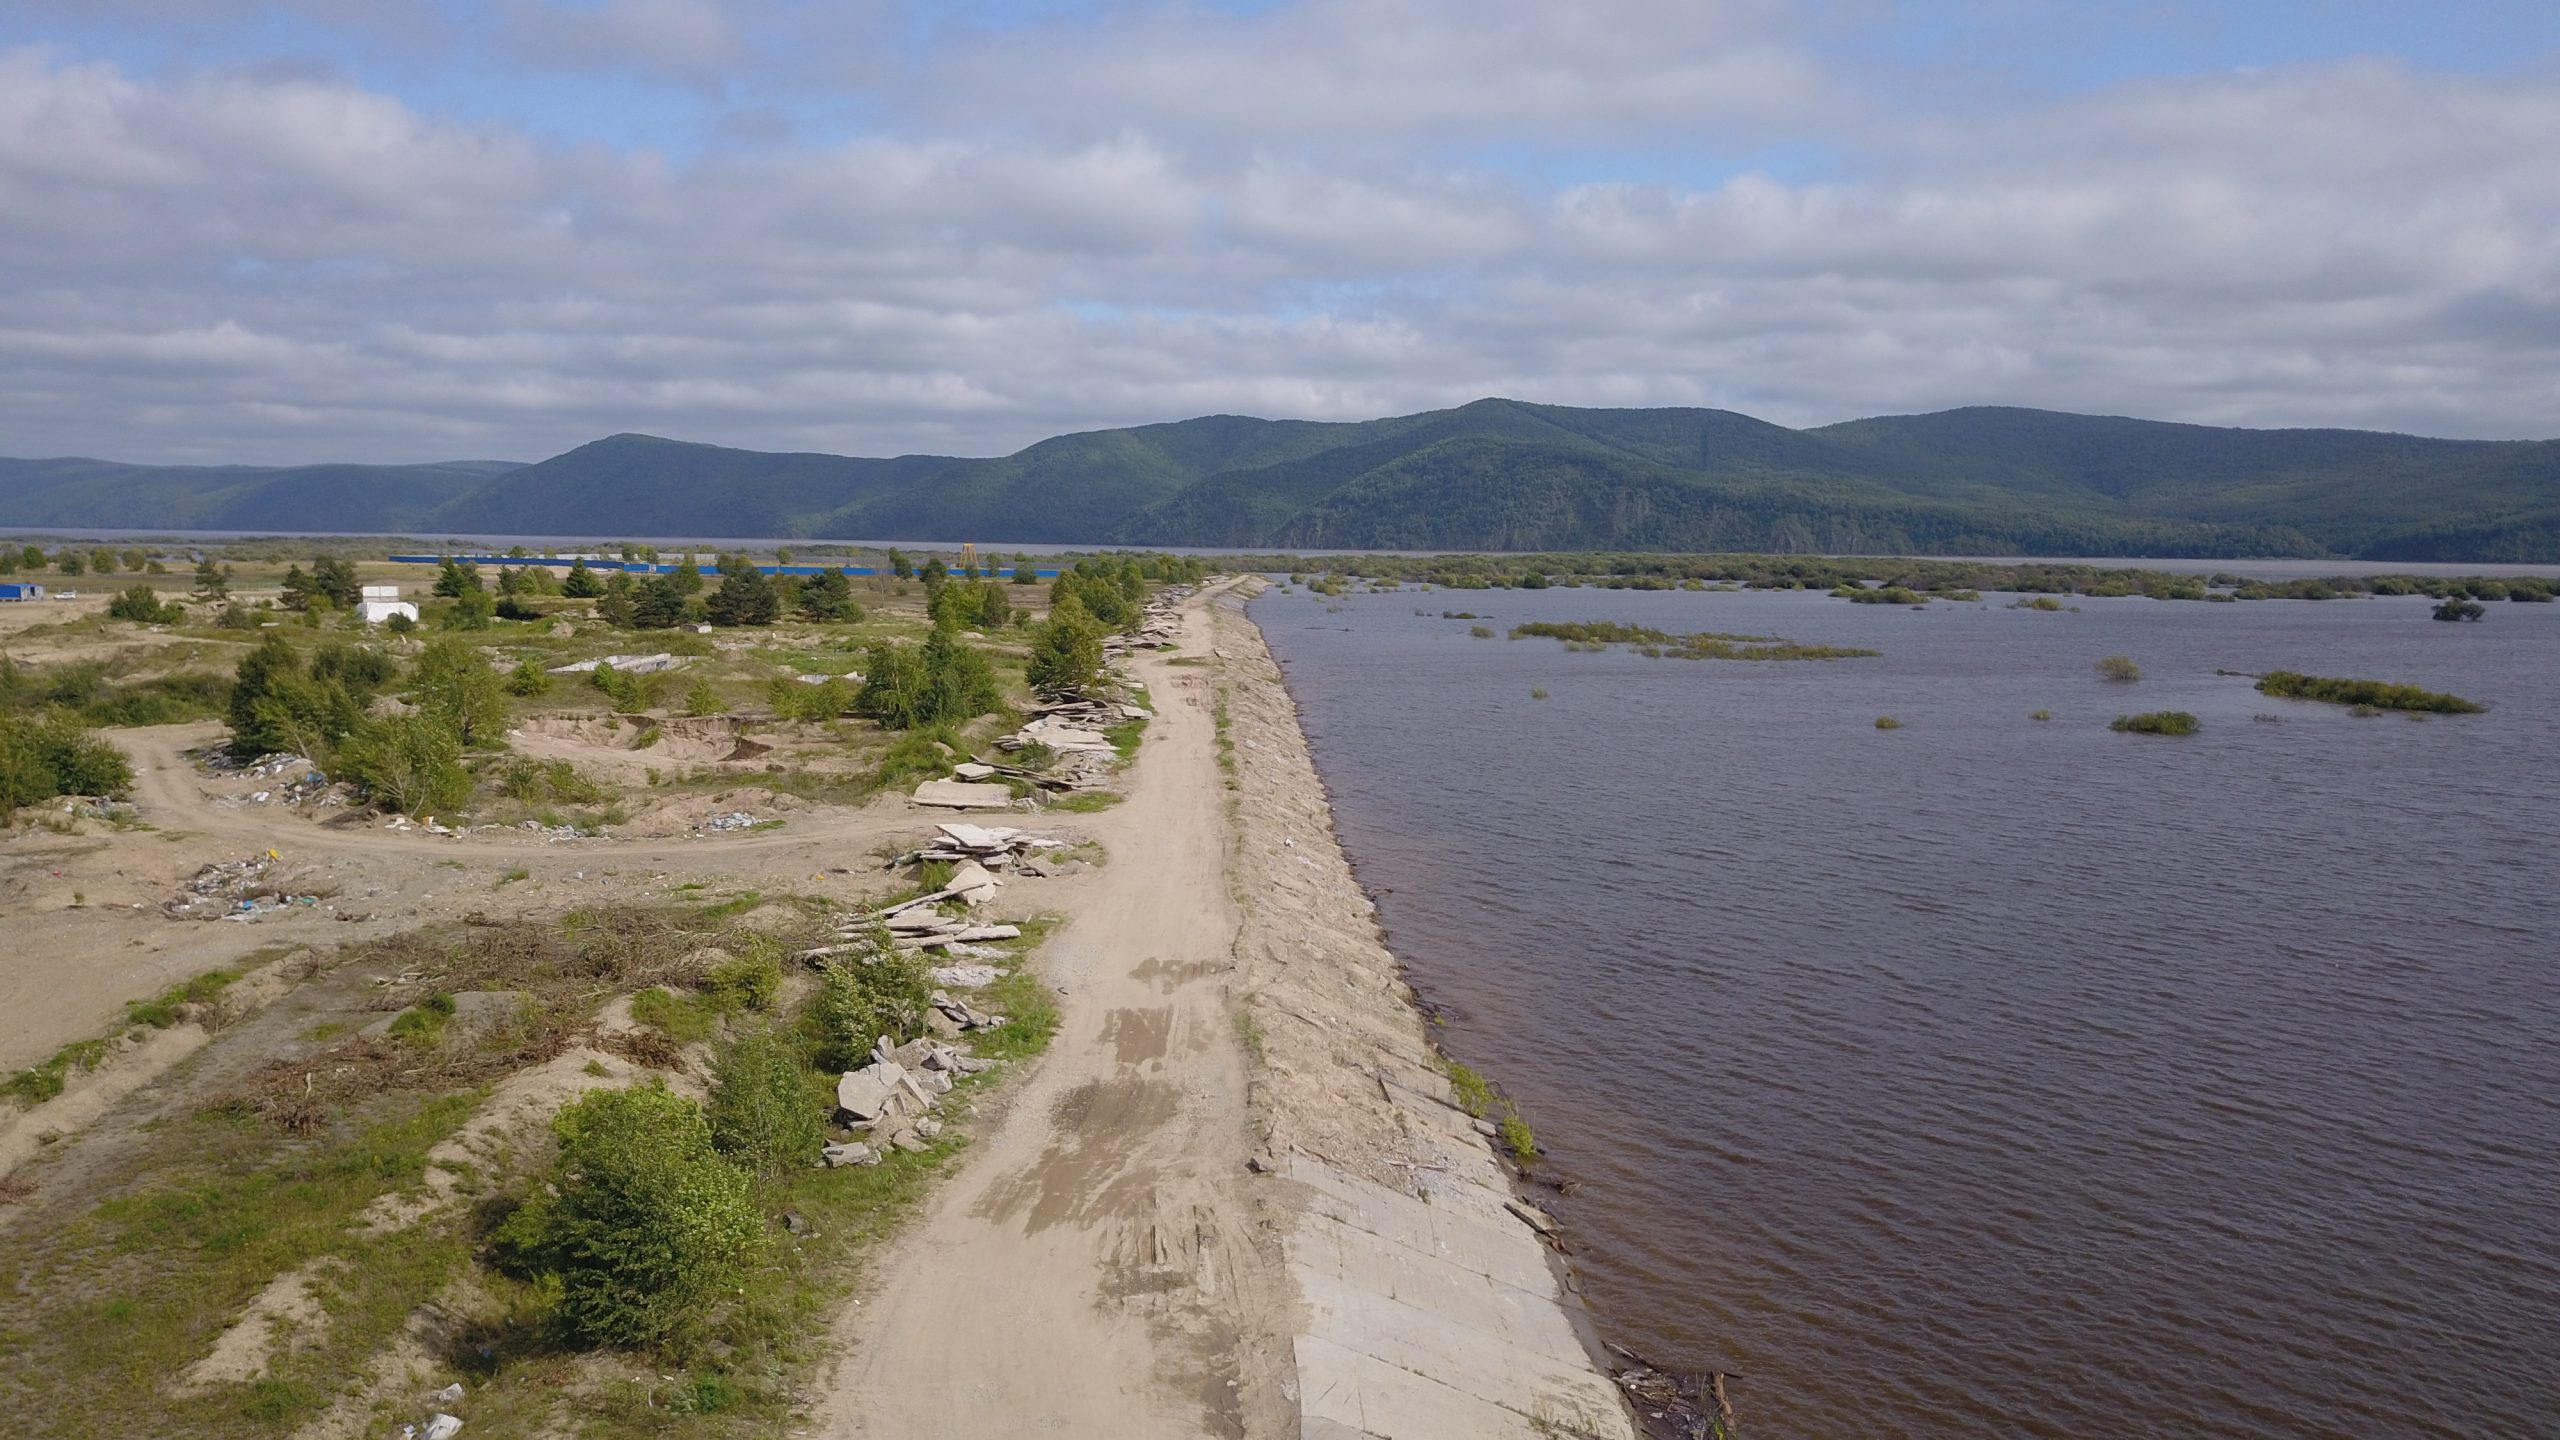 Energokomplekt ООО (Ltd.) will provide the complete delivery of equipment and materials for the construction of the dyke in Komsomolsk-on-Amur